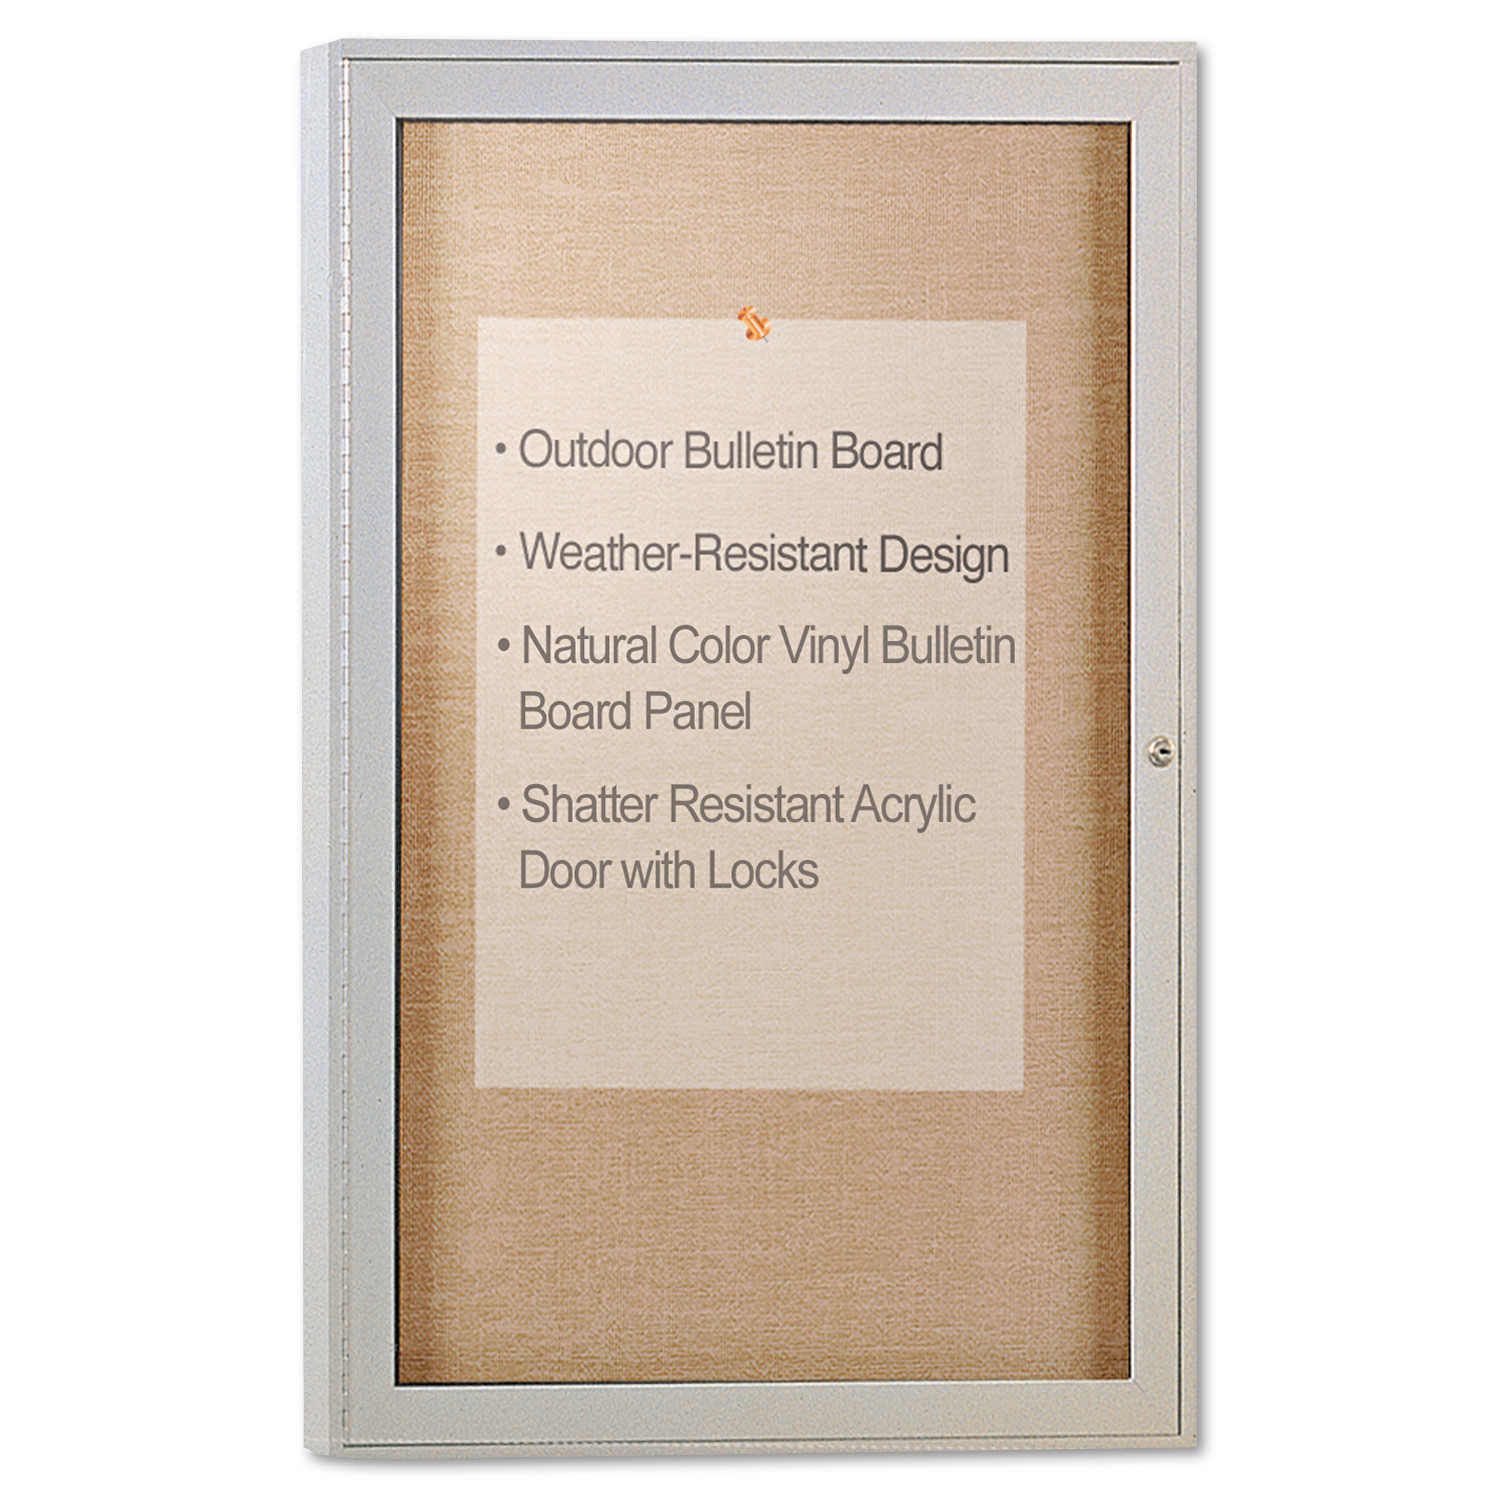 "Ghent Enclosed Outdoor Bulletin Board, 36"" x 24"", Satin-Finished Frame"